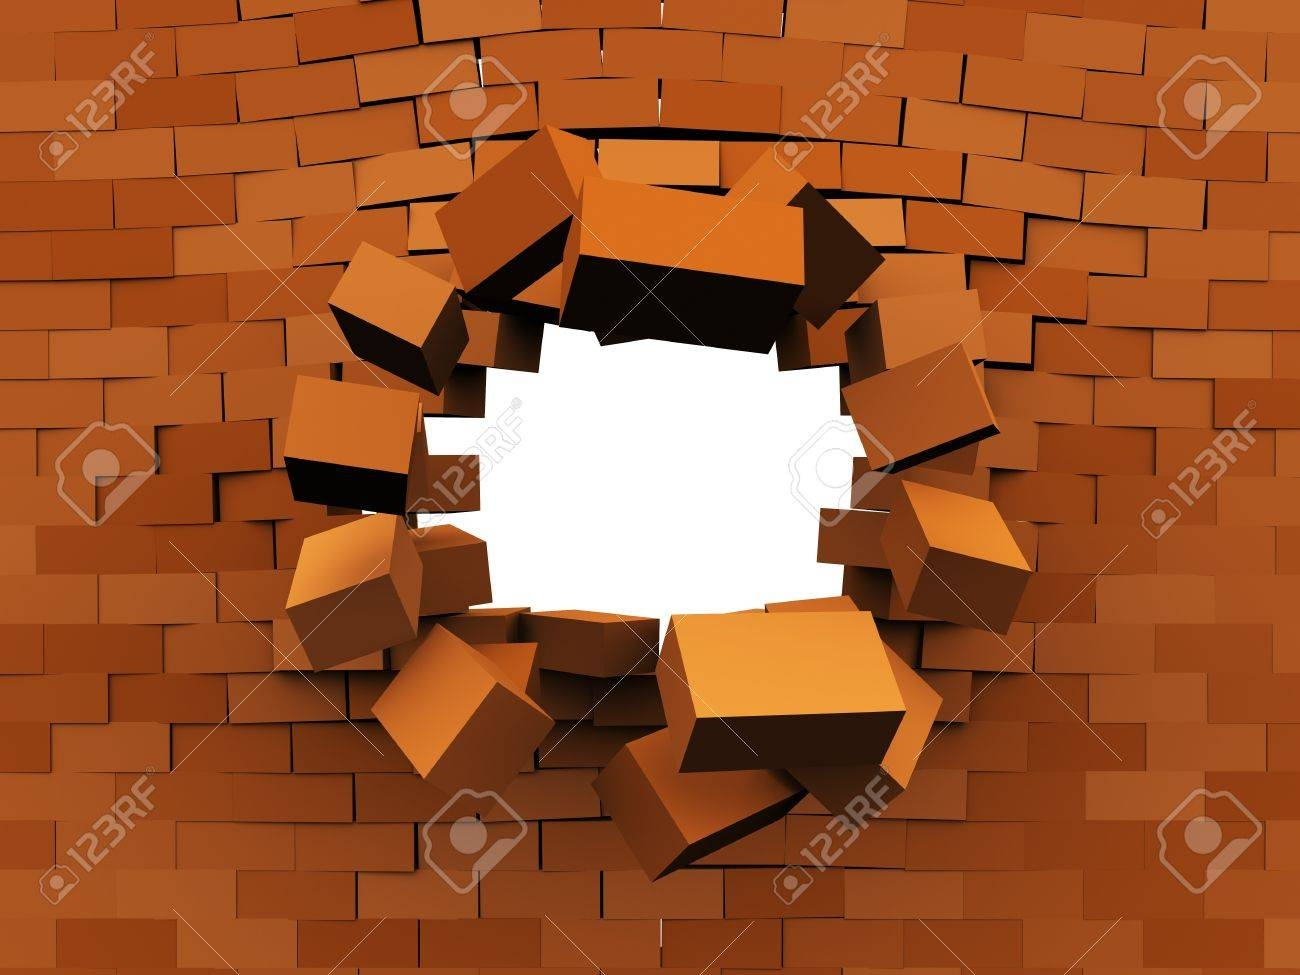 3D Illustration Of Brick Wall Demolition, Over White Background Regarding Most Current 3D Brick Wall Art (View 6 of 20)